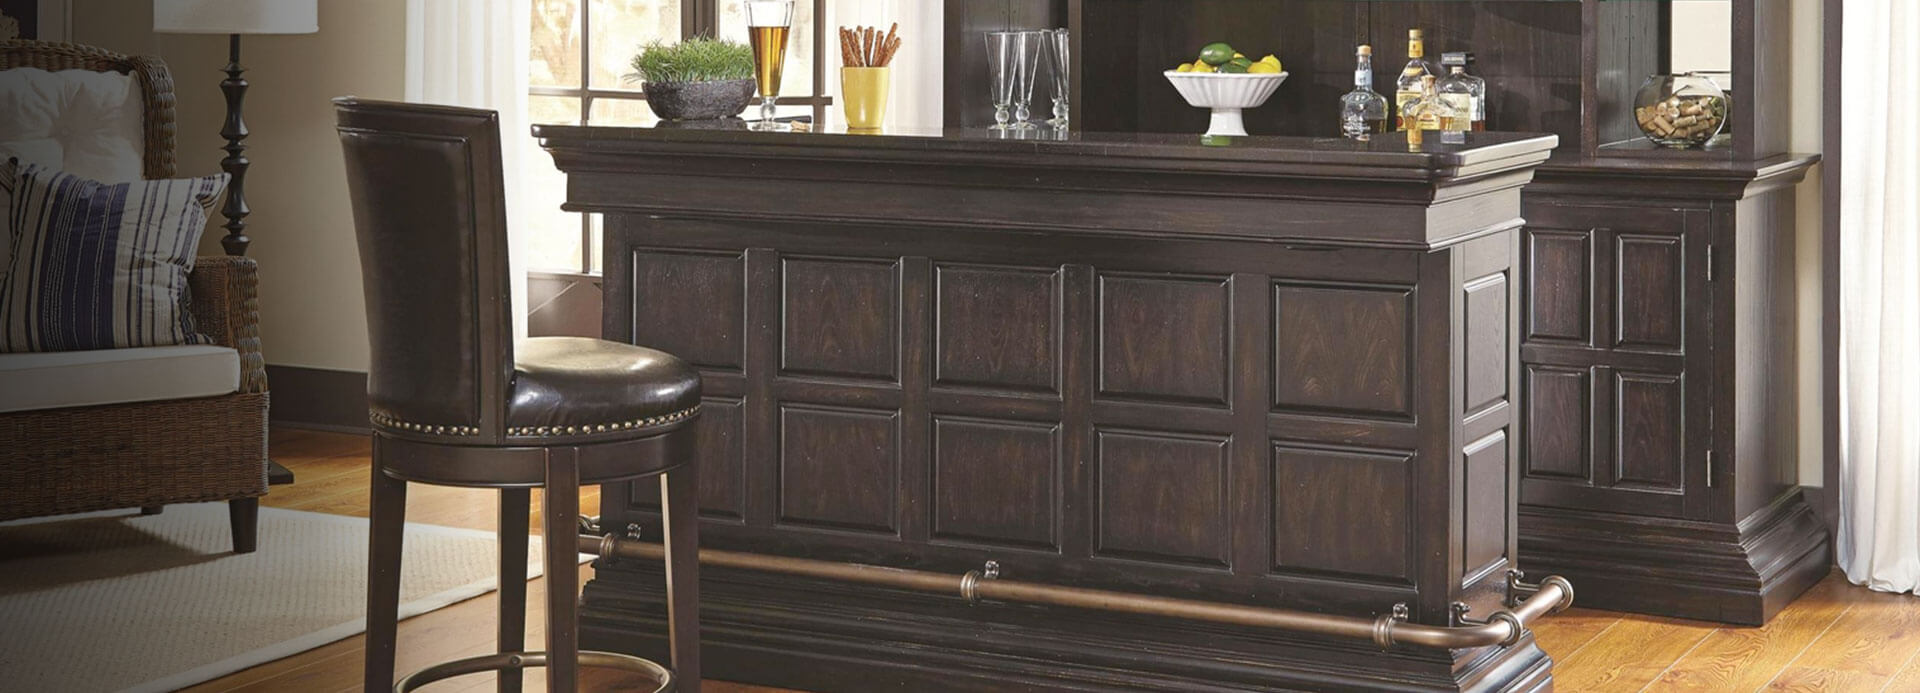 Home bar furniture - The benefits of contemporary bar furniture ...